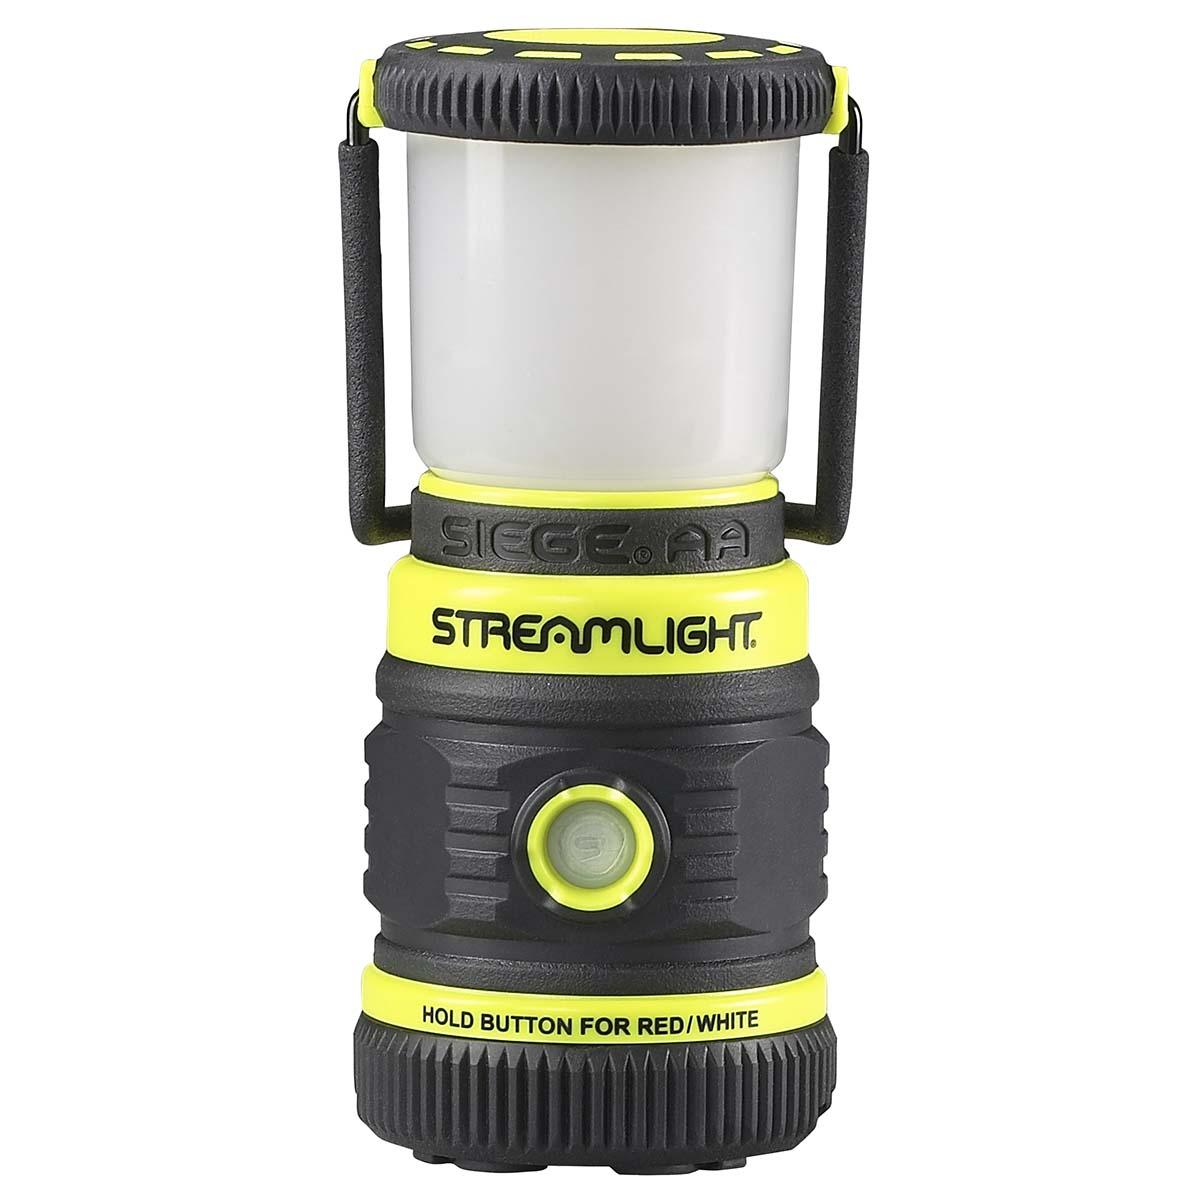 Streamlight Siege AA Magnetic Base Yellow 44943